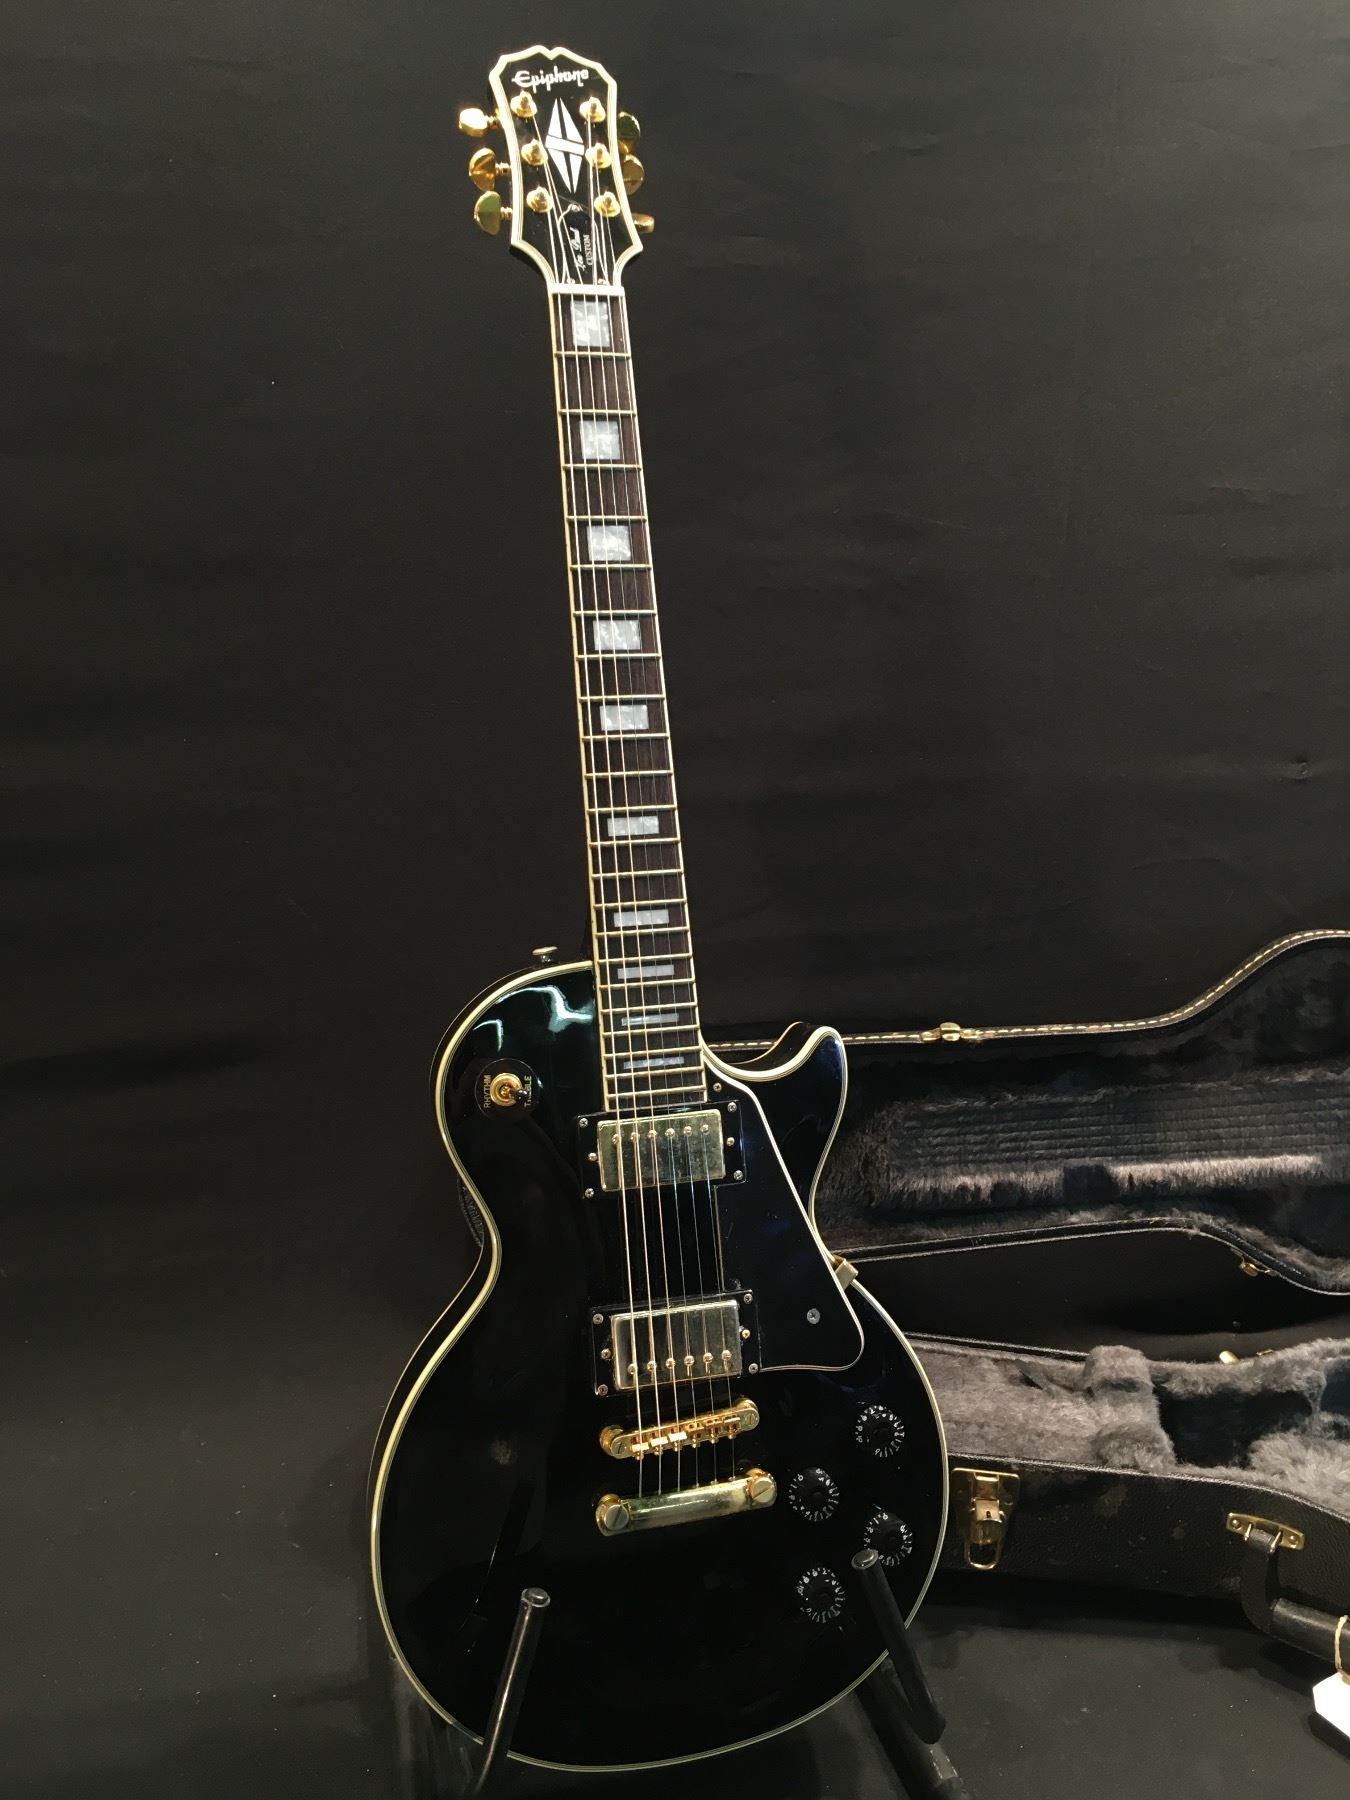 epiphone les paul custom guitar with gold hardware two humbucker pickups three position. Black Bedroom Furniture Sets. Home Design Ideas